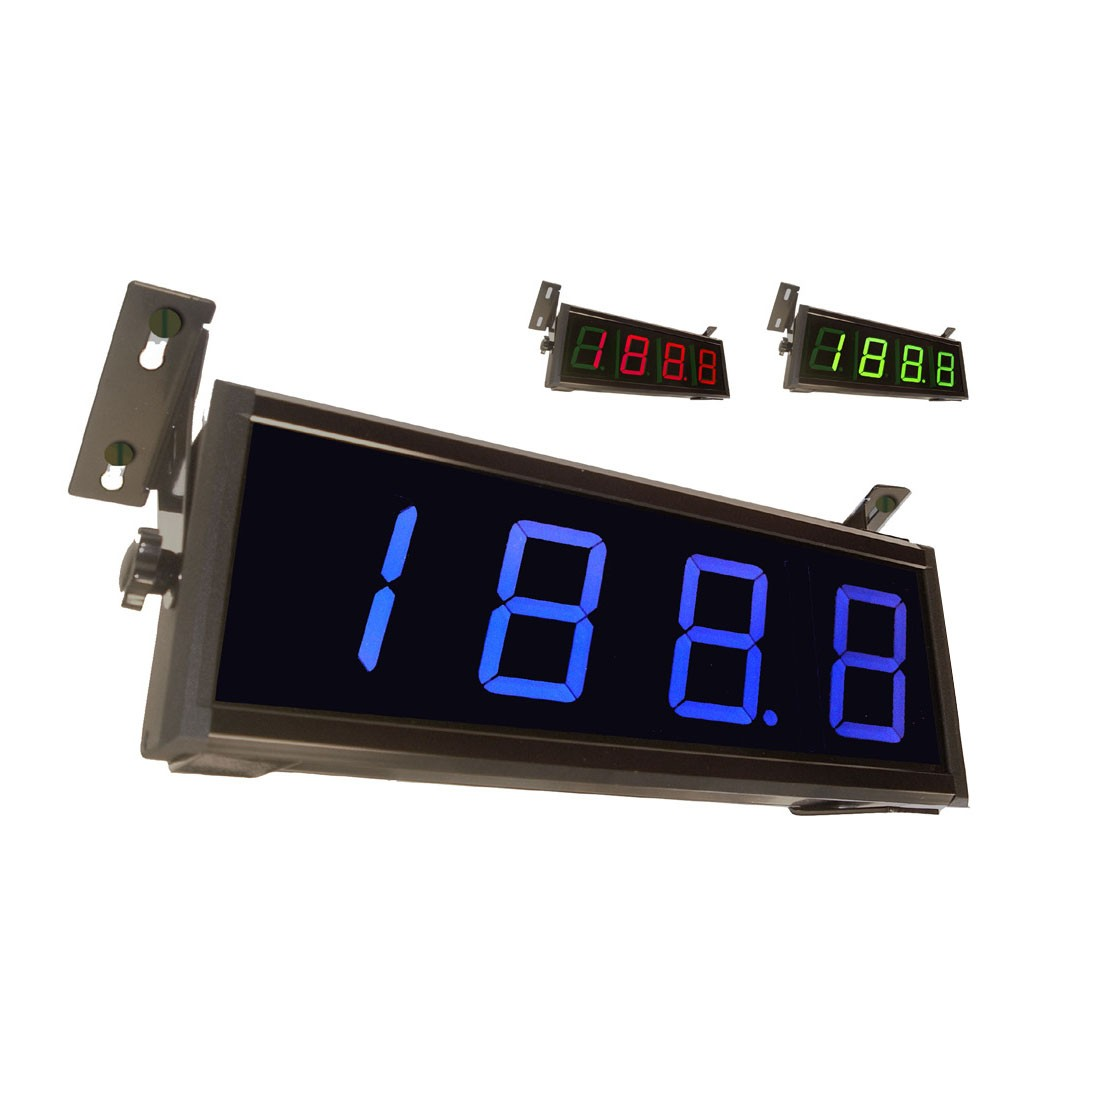 HBDR Series LED Digital Panel Meter